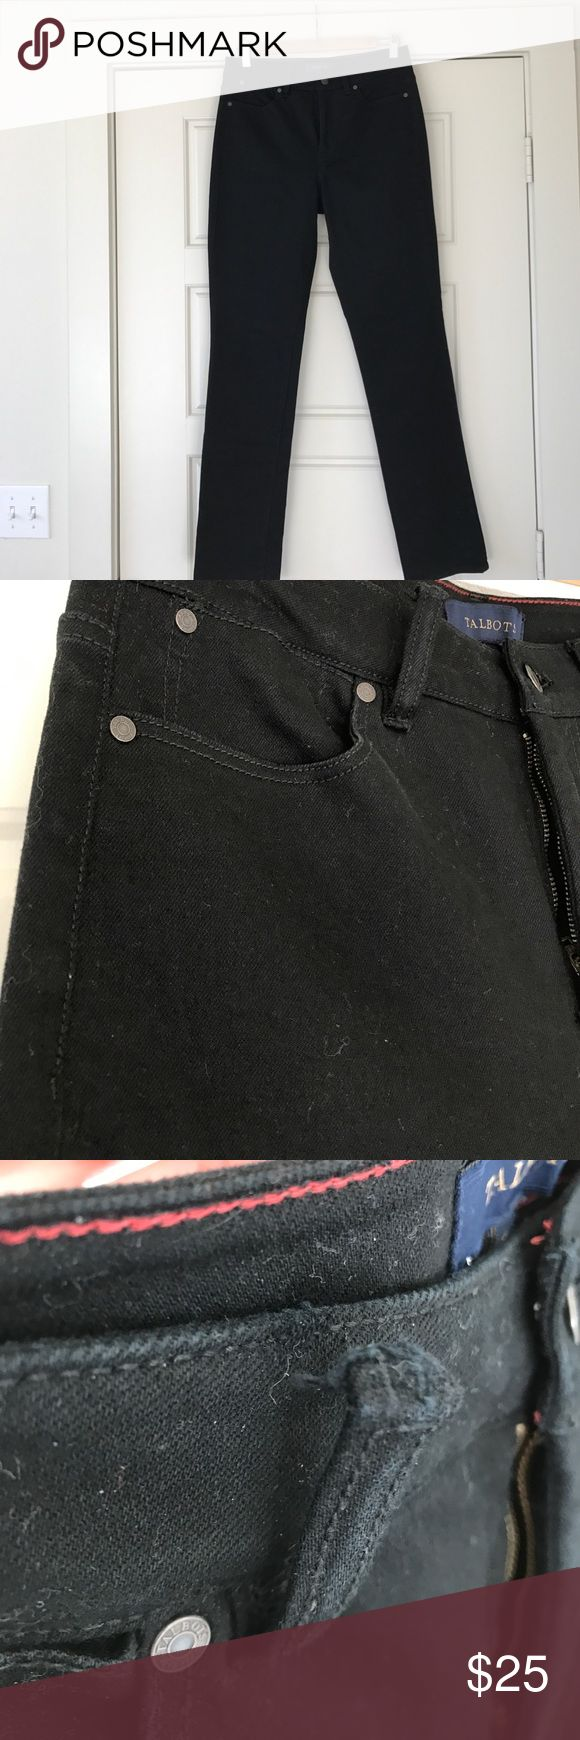 High Rise Straight Leg Black Jeans Excellent condition. Never worn but when trying on the top of one belt loop came free and needs to be restitched. Very easy cheap fix and can be done at home. Mom jean style but made a bit easier to wear with forgiving modern cut. Great wardrobe essential. True to size. Denim feels like Levi's. Talbots Jeans Straight Leg